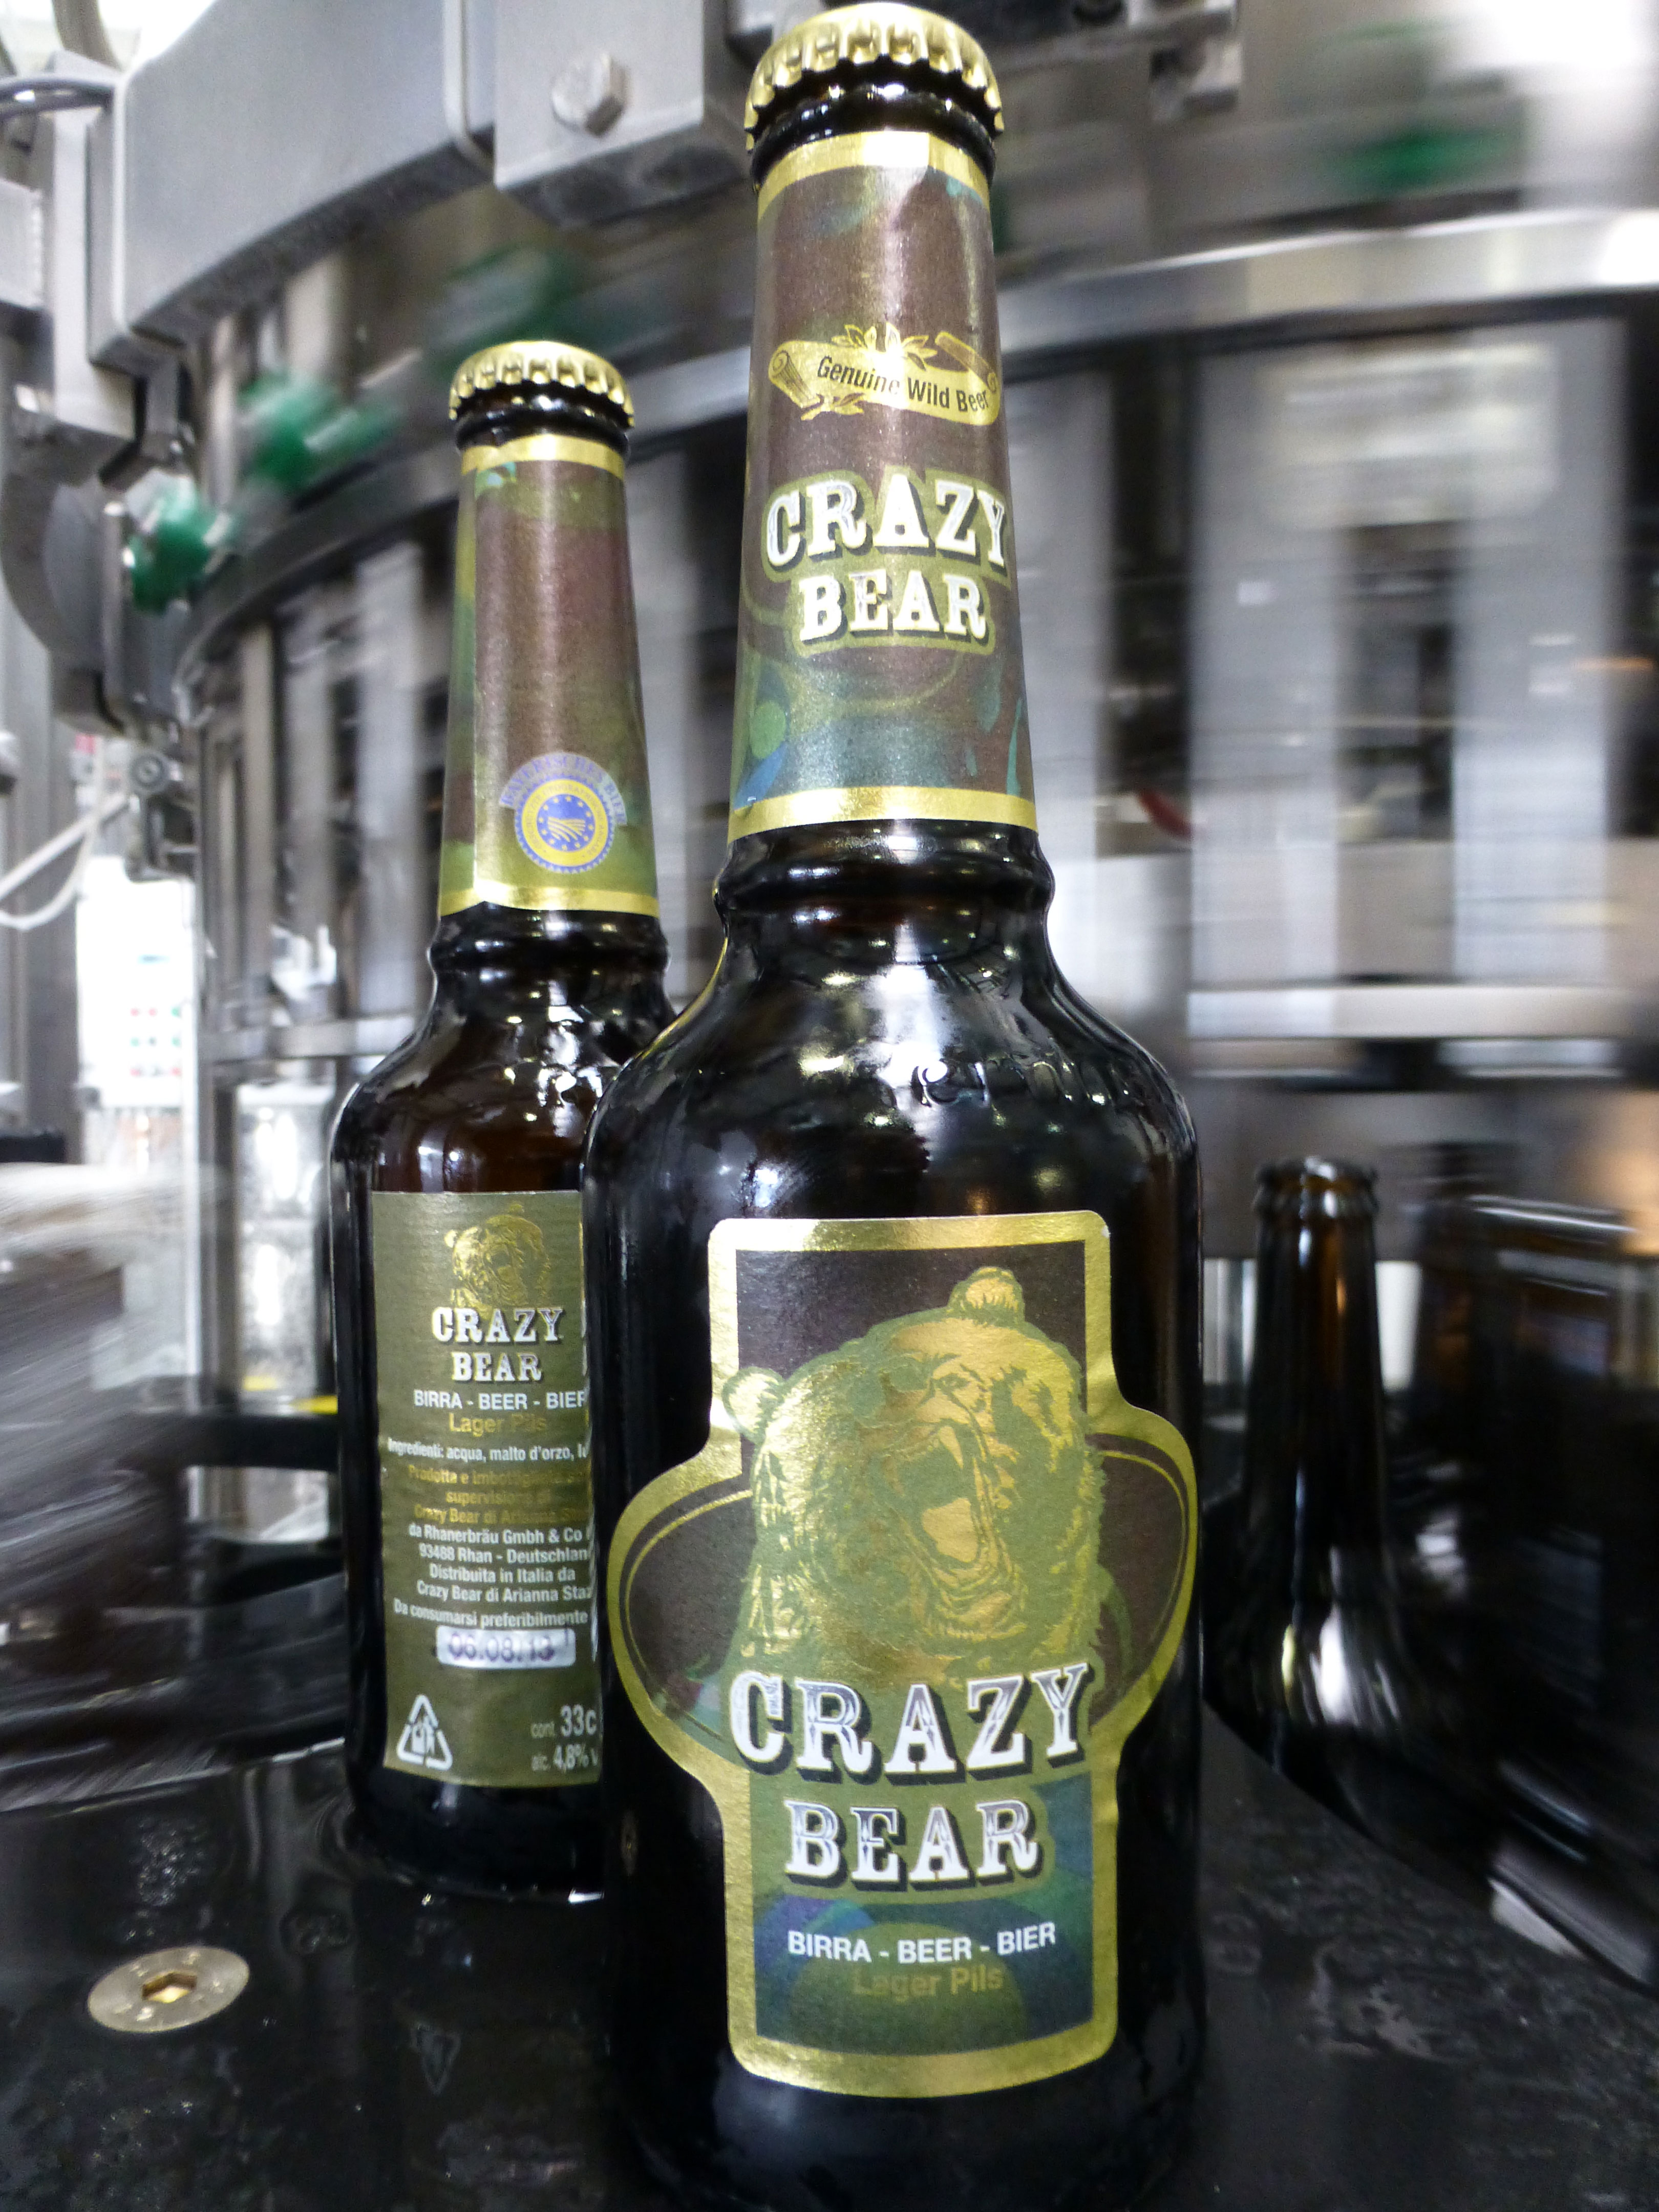 tl_files/images/biere/Crazy Bear/web-2-FlaschenP1020615.jpg